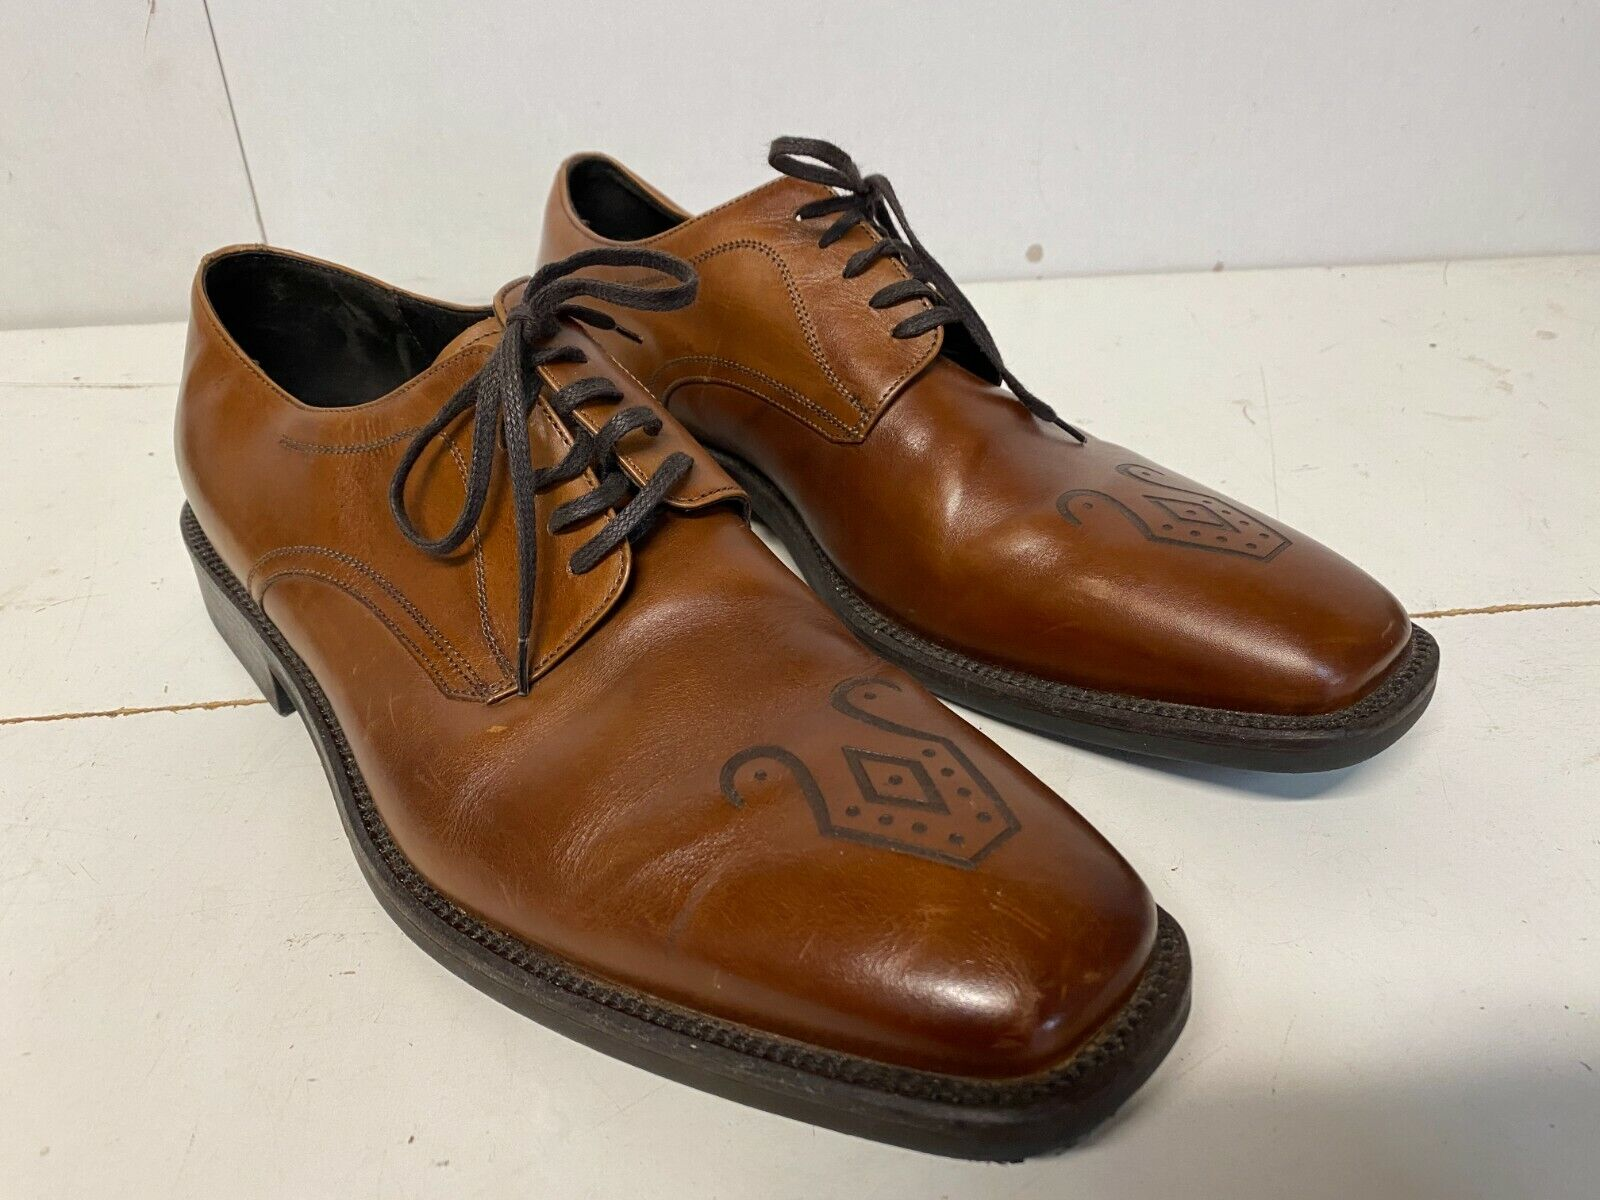 Johnston & Murphy Mens Sz 10 Brown Made In Italy Oxfords Dress Shoes B17